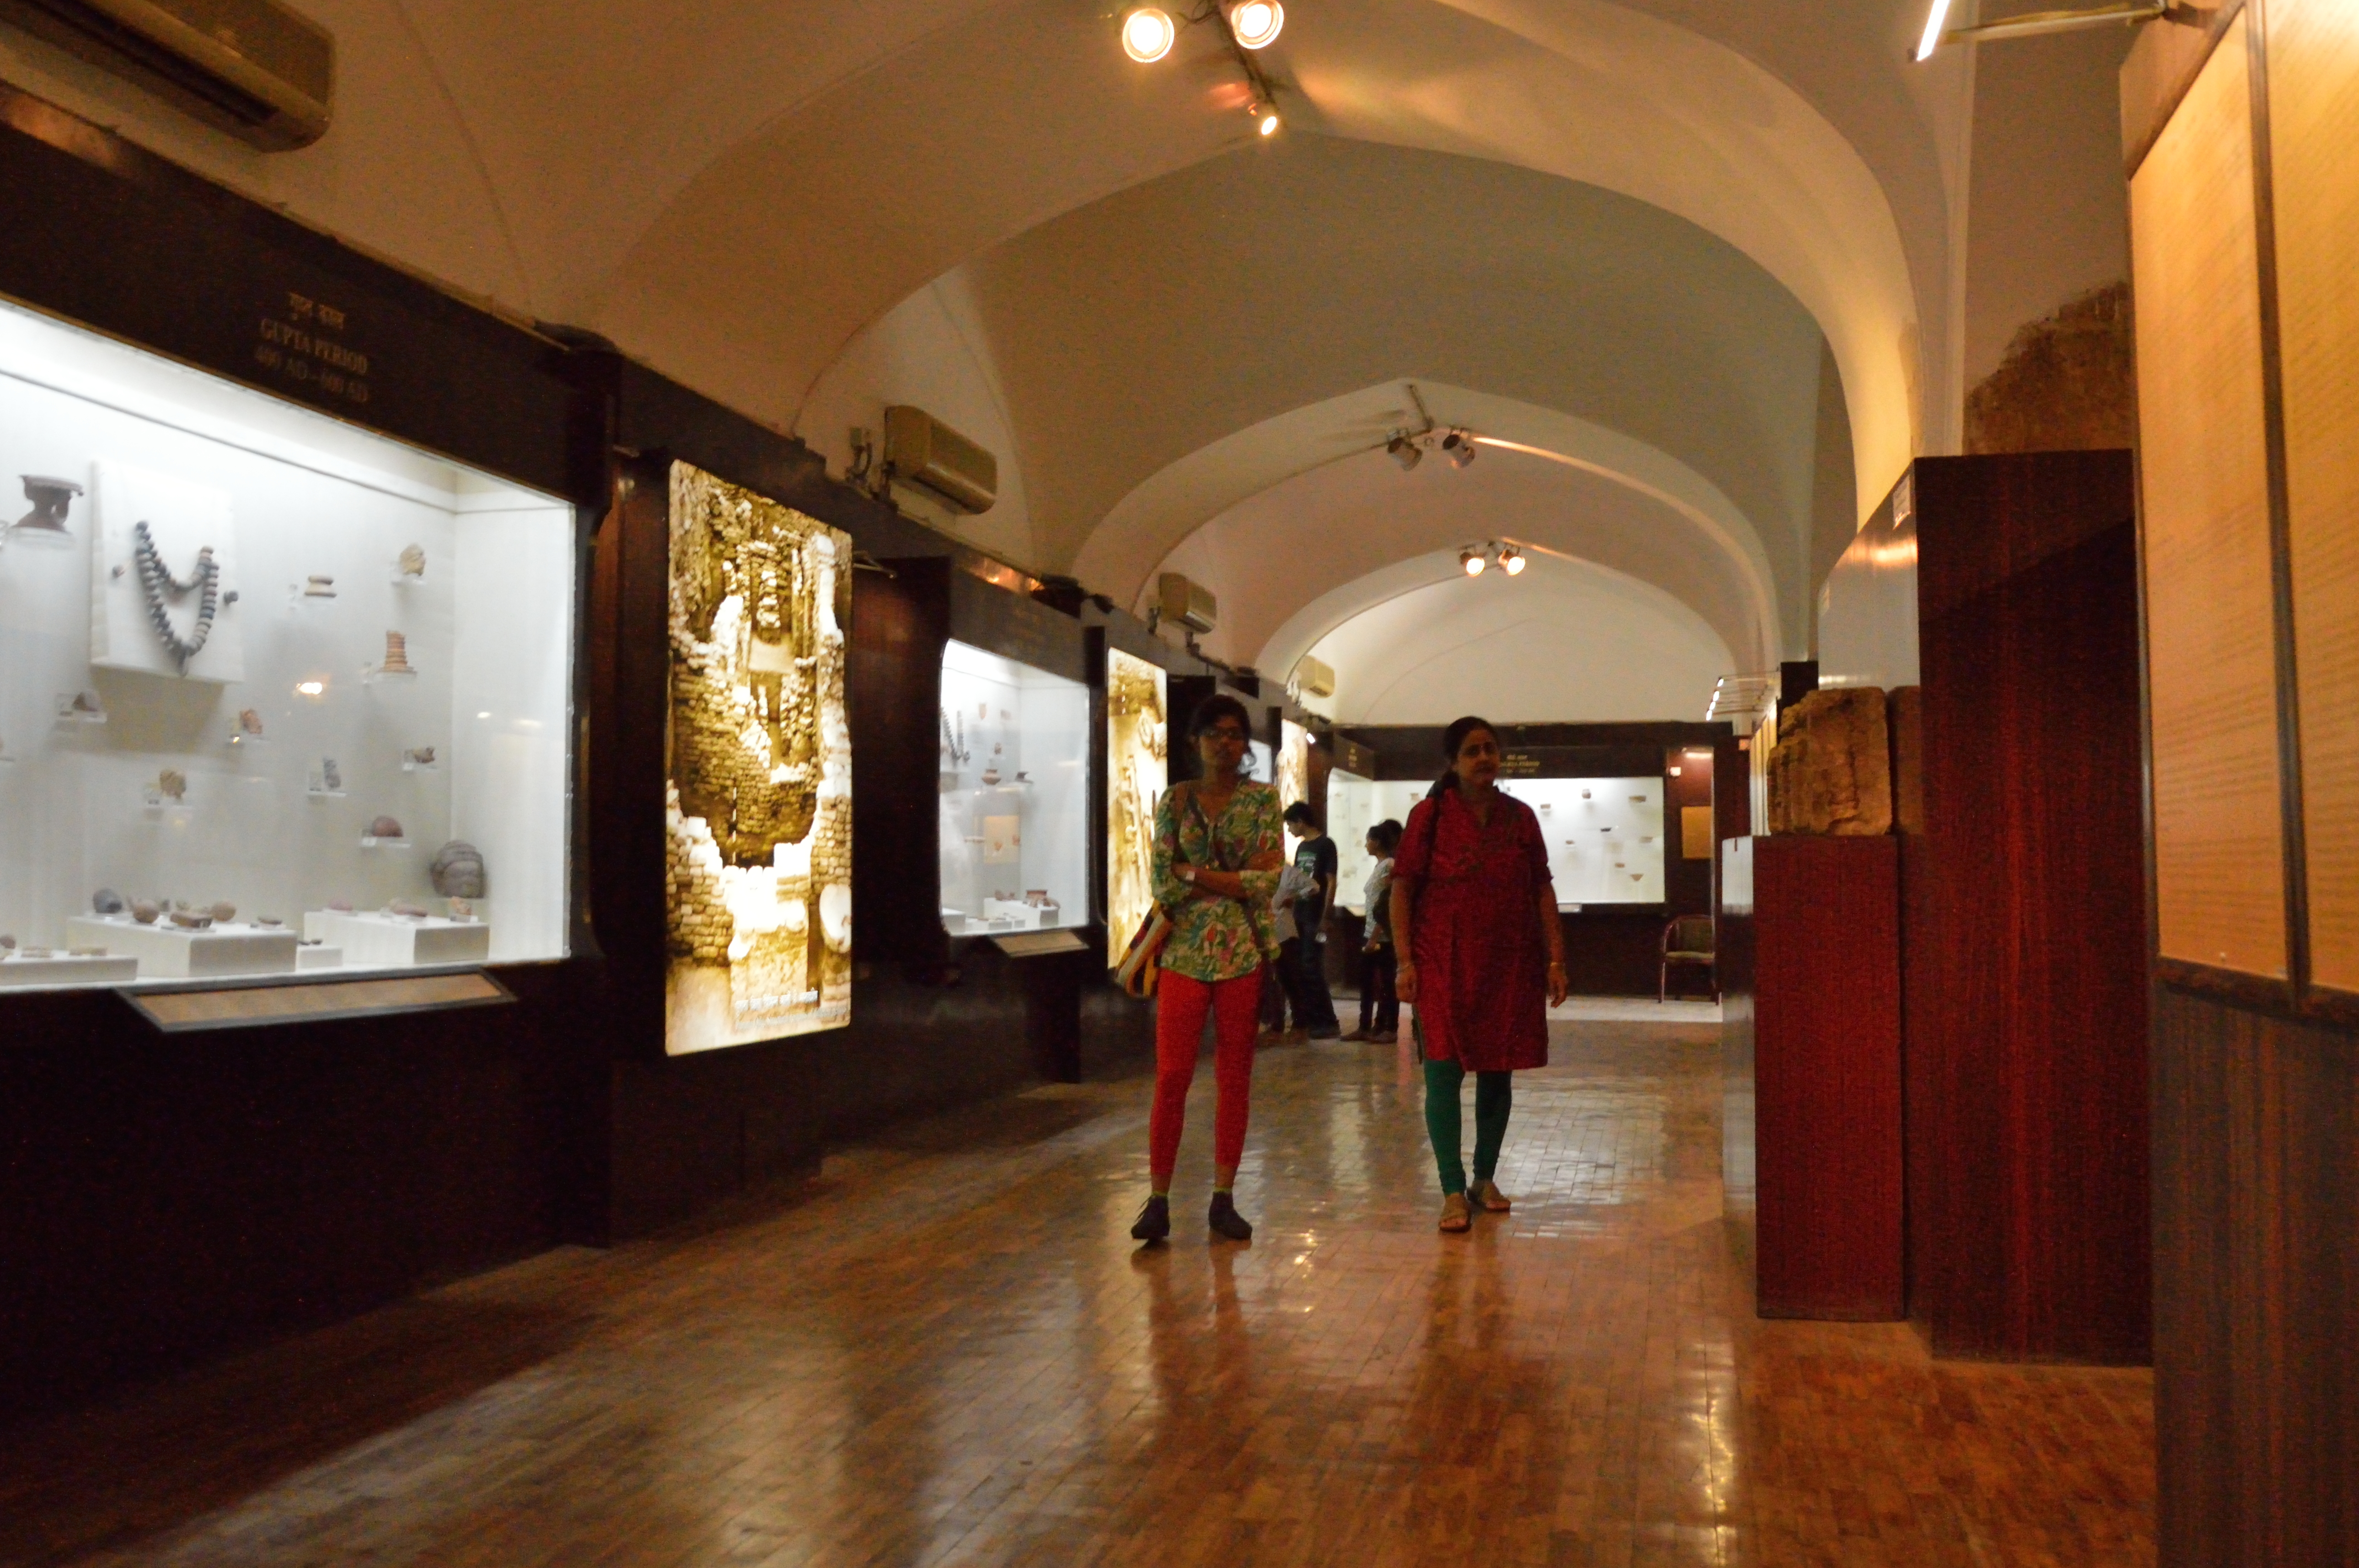 Museum of Archaeology Delhi, Archaeological Museum, Delhi Overview and other Info | KahaJaun